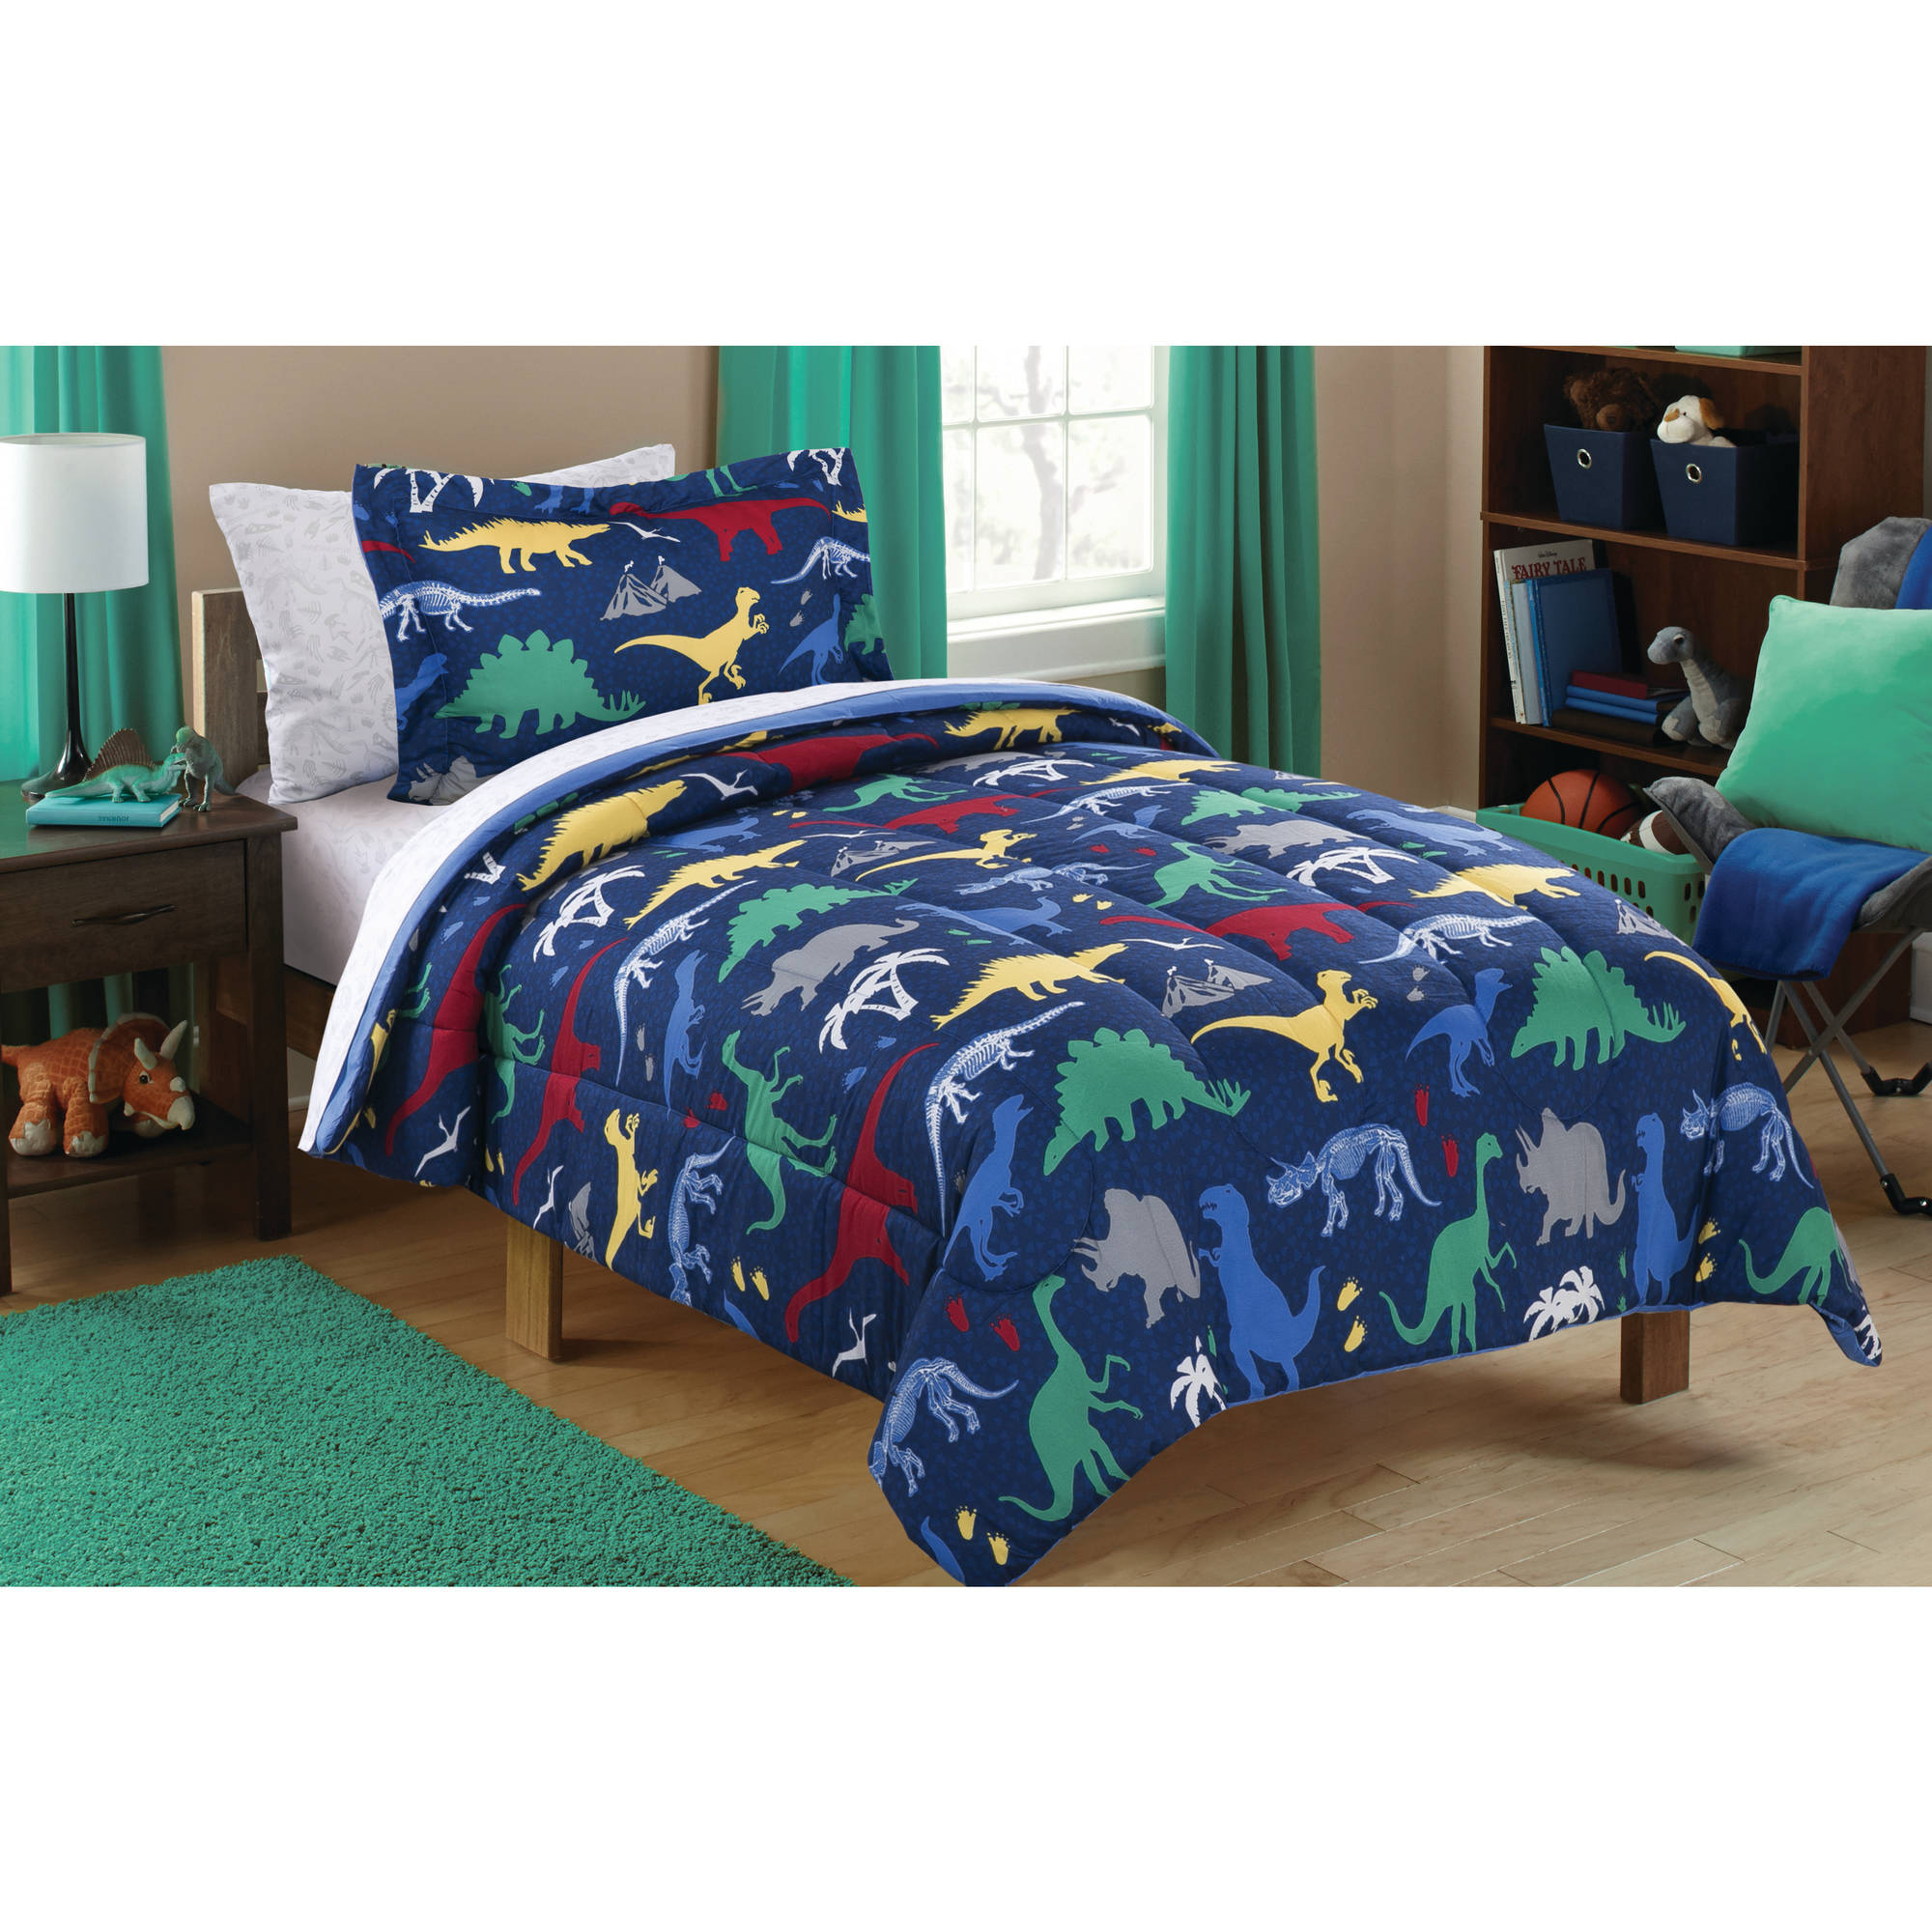 Mainstays Kids Dino Roam Bed In A Bag Coordinating Bedding Set   Walmart.com